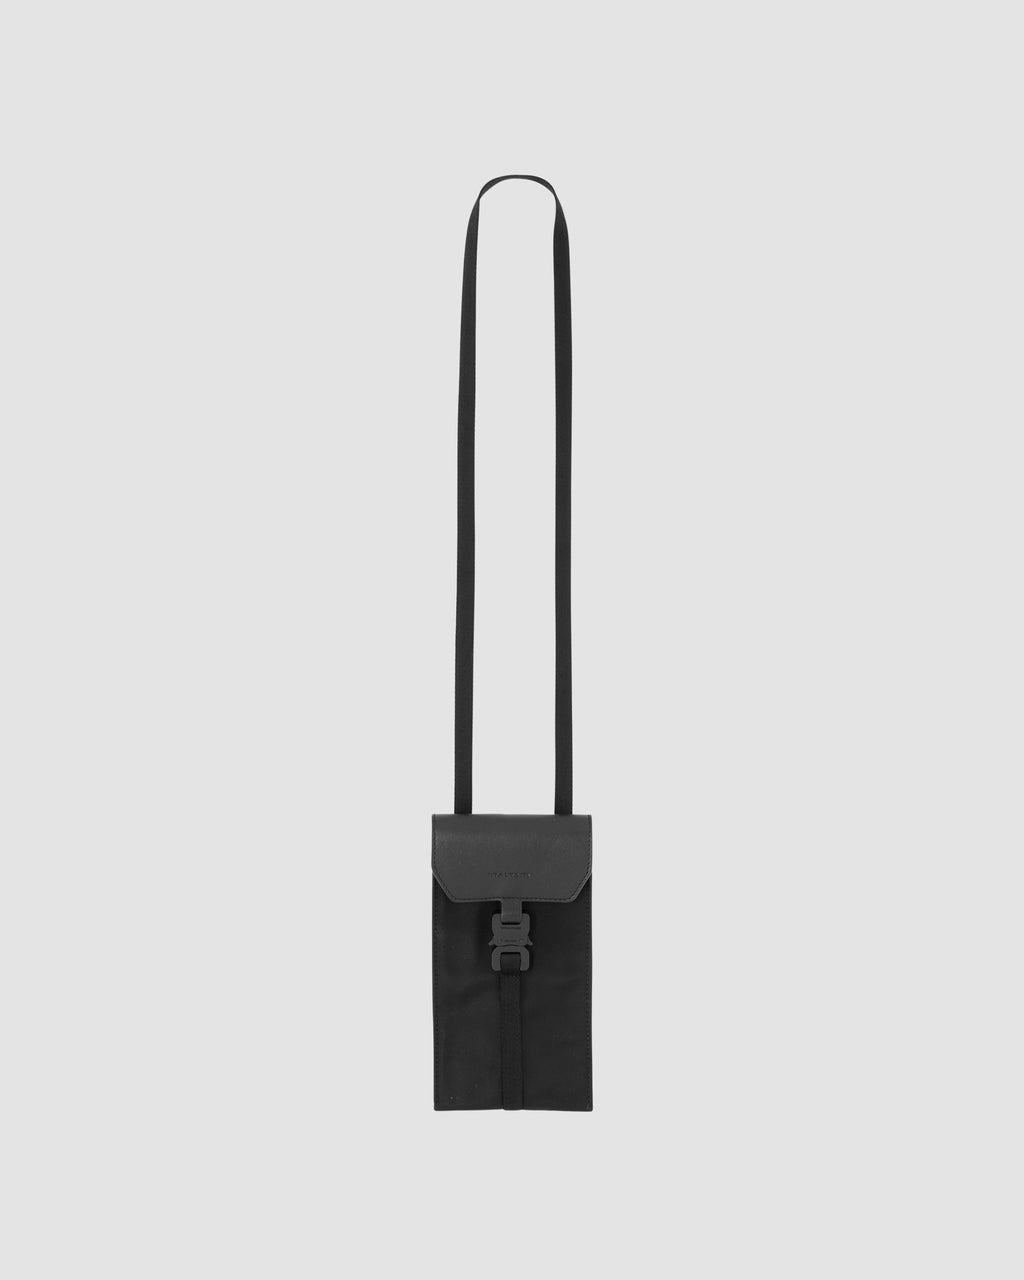 1017 ALYX 9SM | PHONE BUCKLE BAG | Bag | Accessories, Bags, BLACK, Man, S20, S20 Drop II, SHOULDER BAGS, UNISEX, Woman